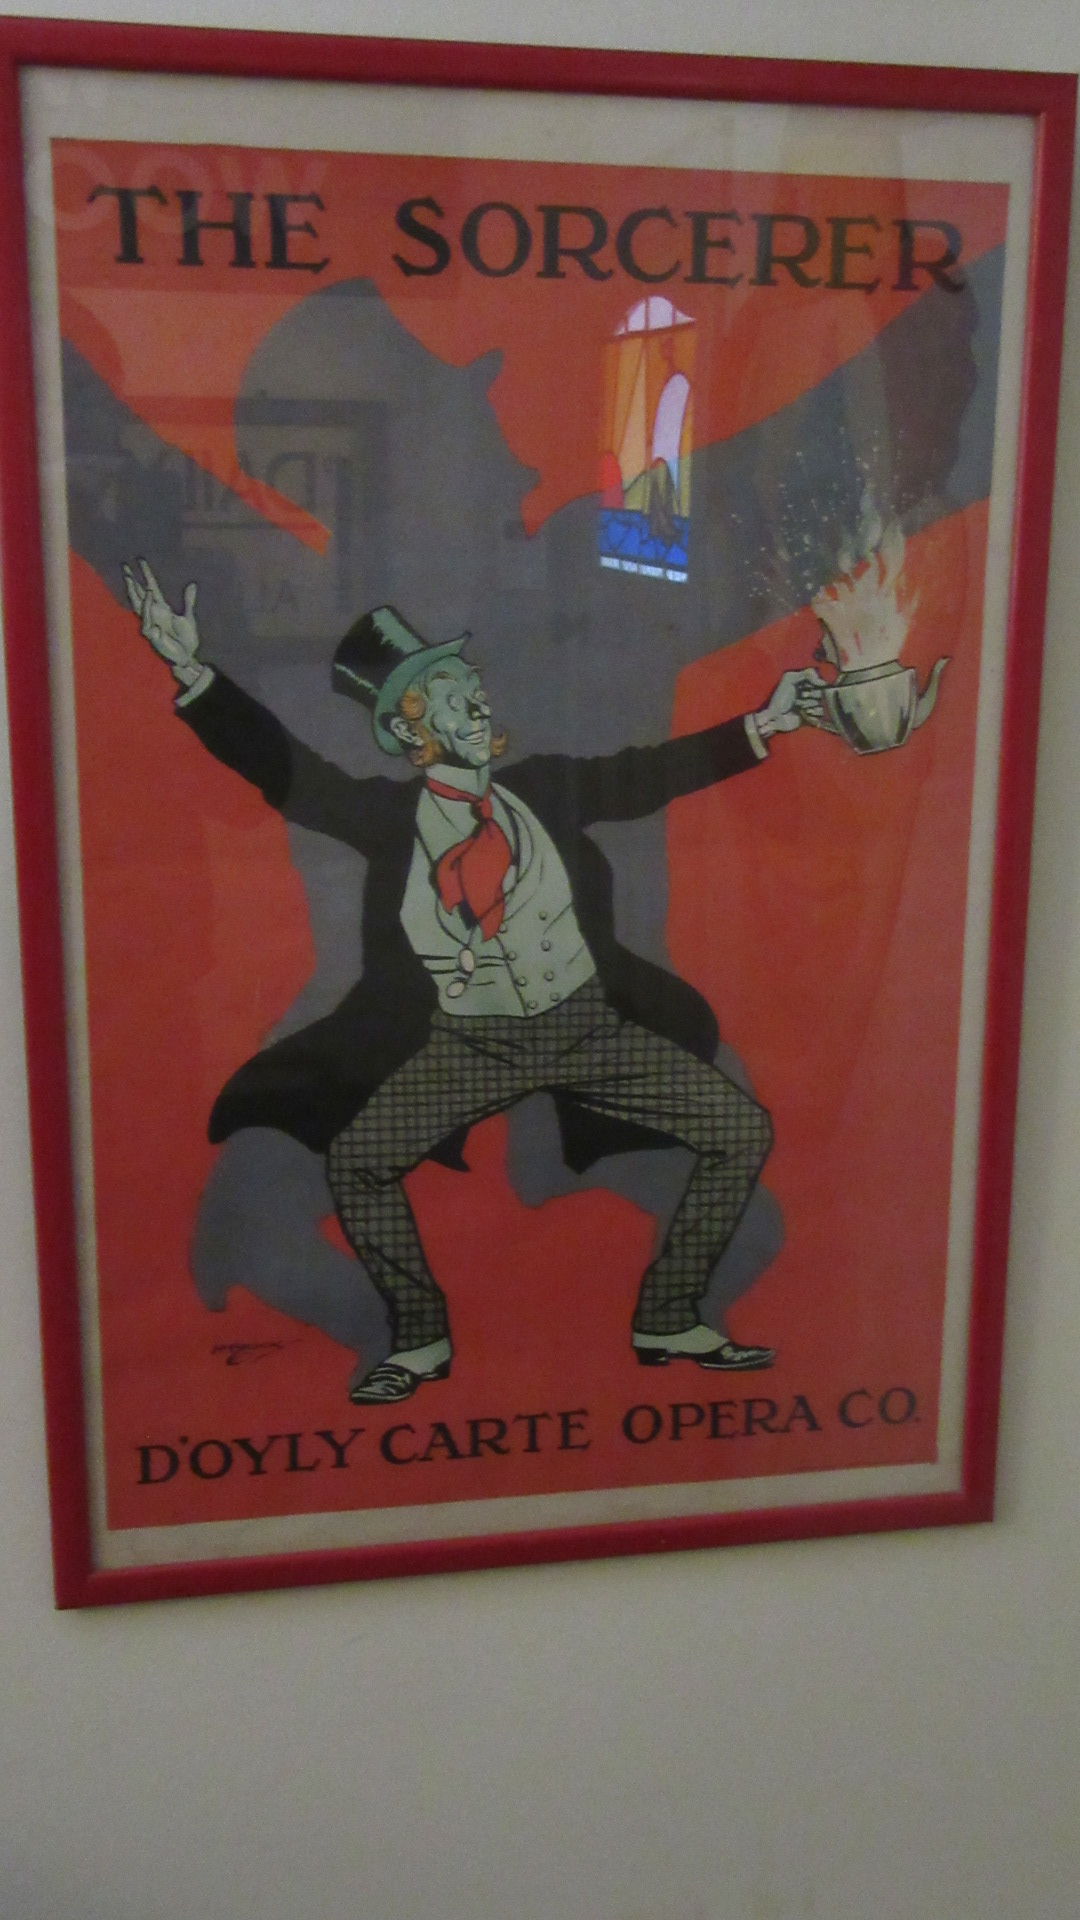 VINTAGE DOYLY CARTE ADVERTISING POSTER